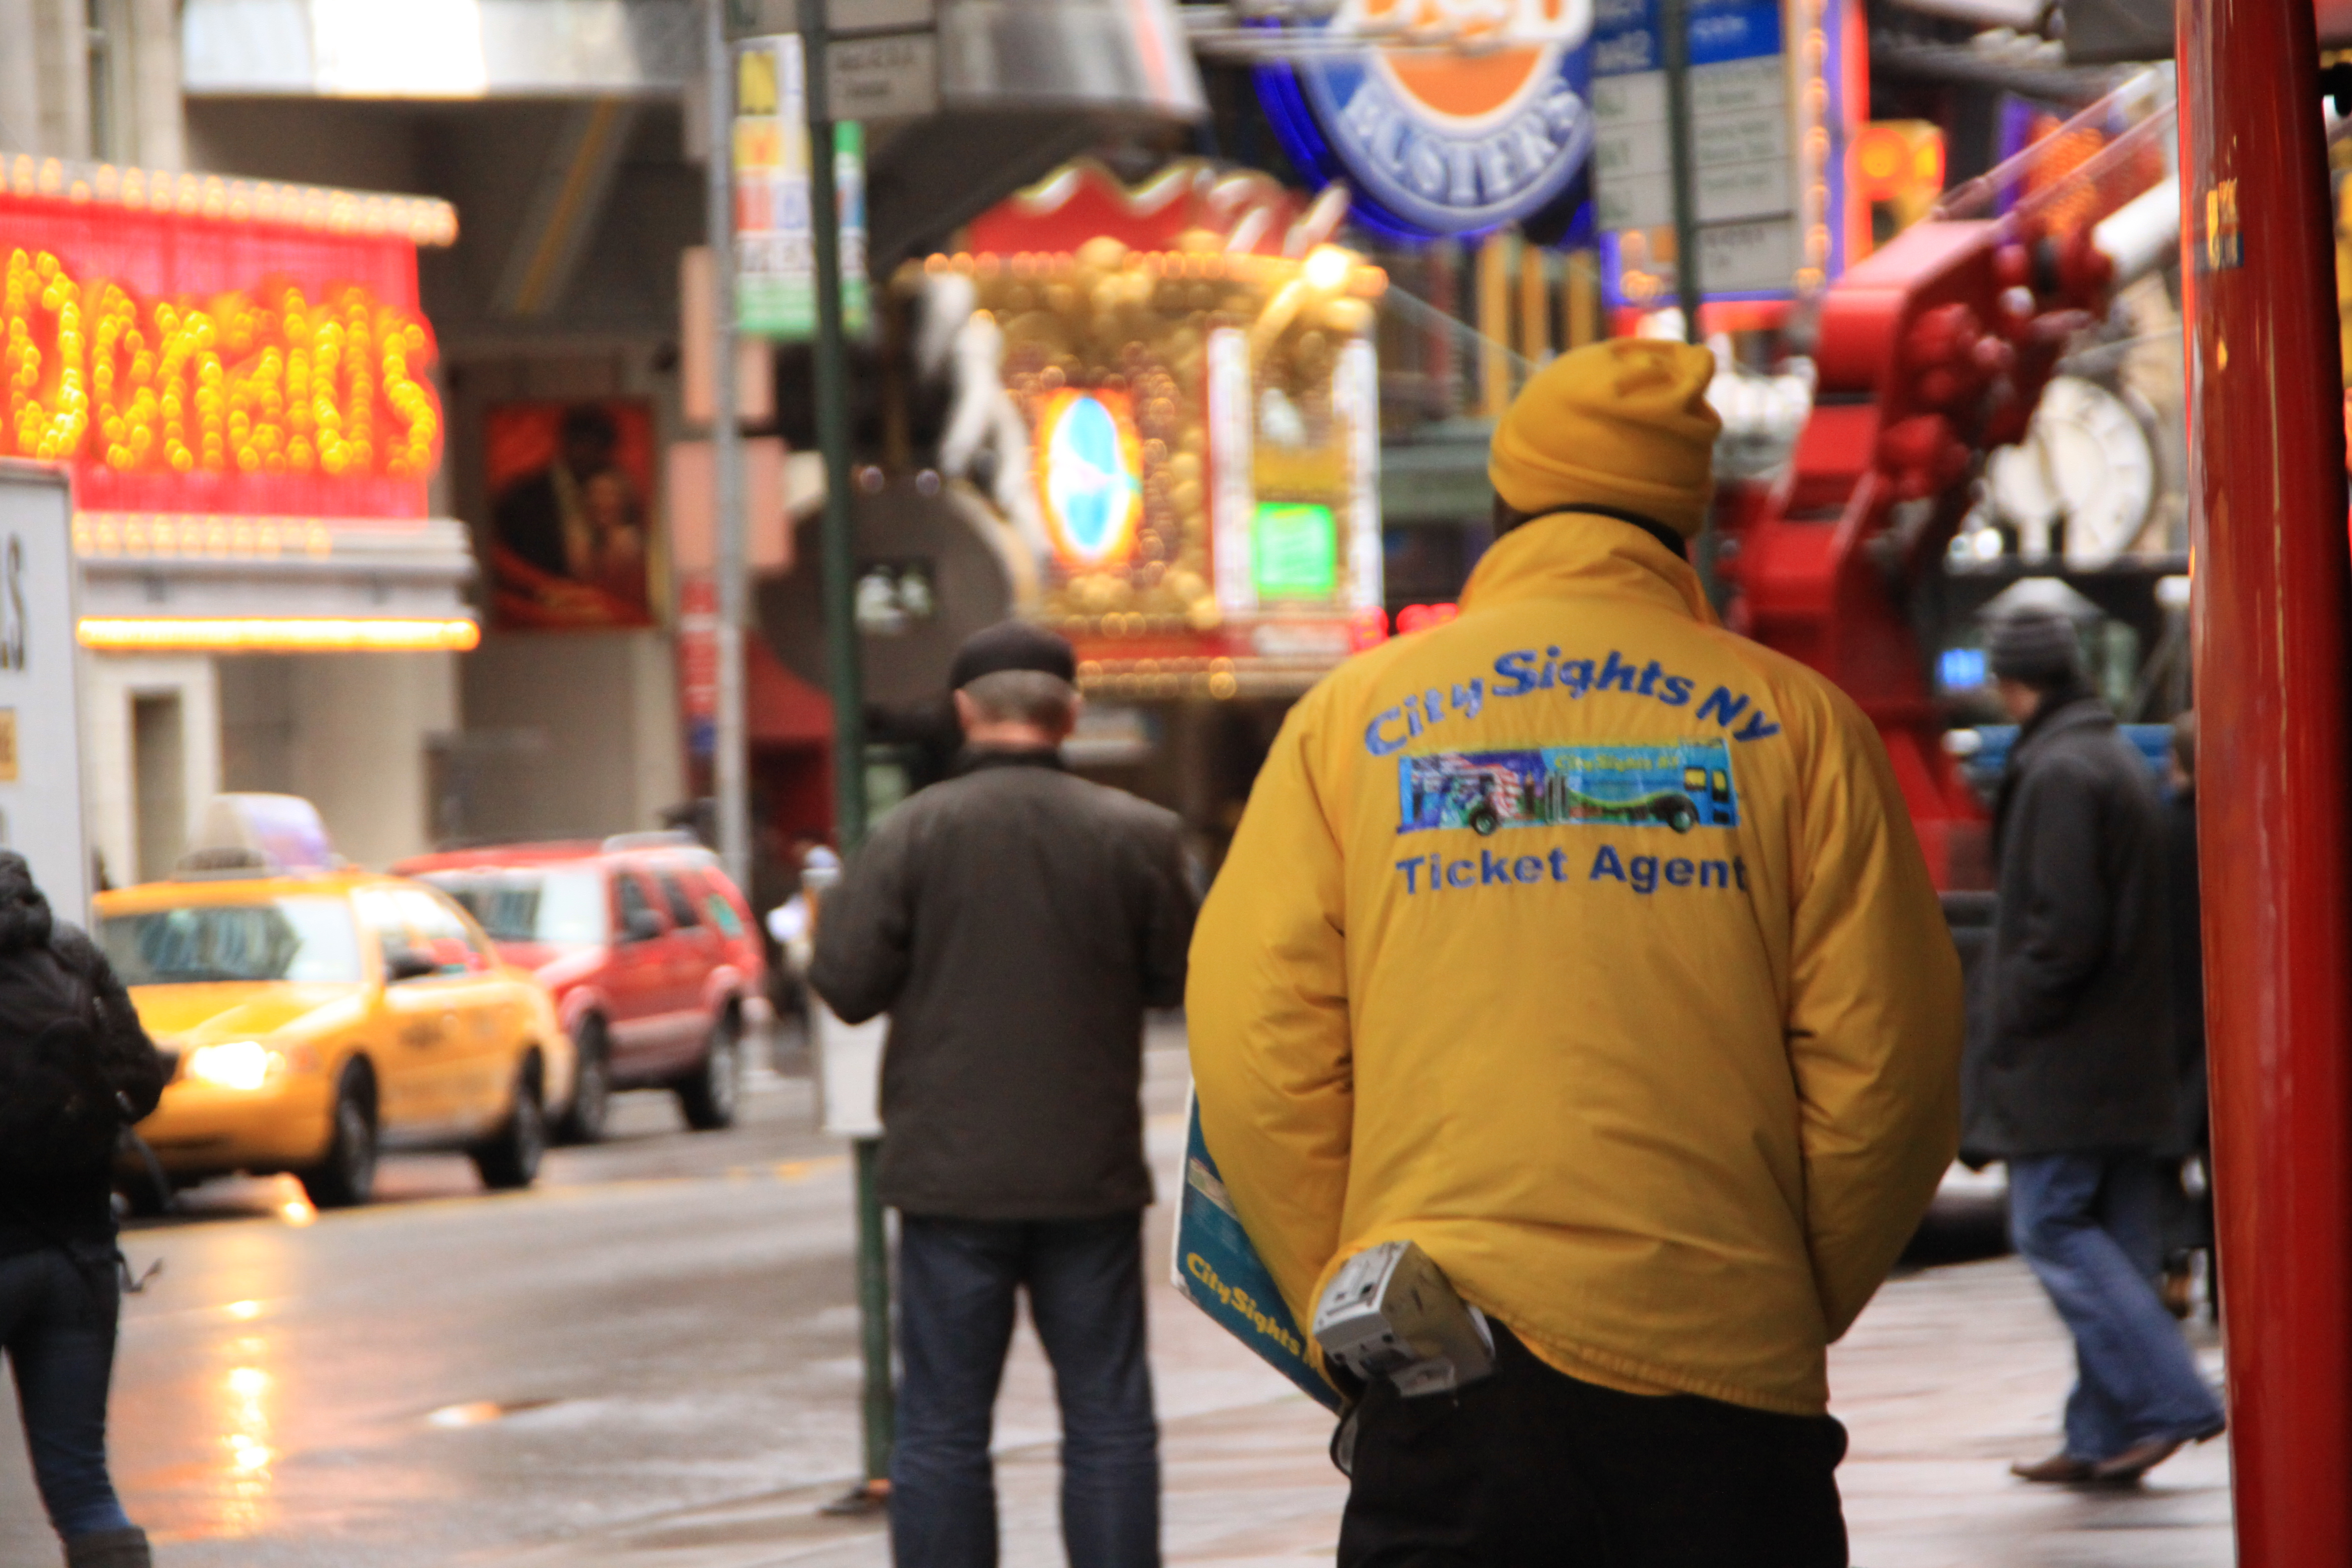 Ticket man was looking for tourists on streets in Times Square